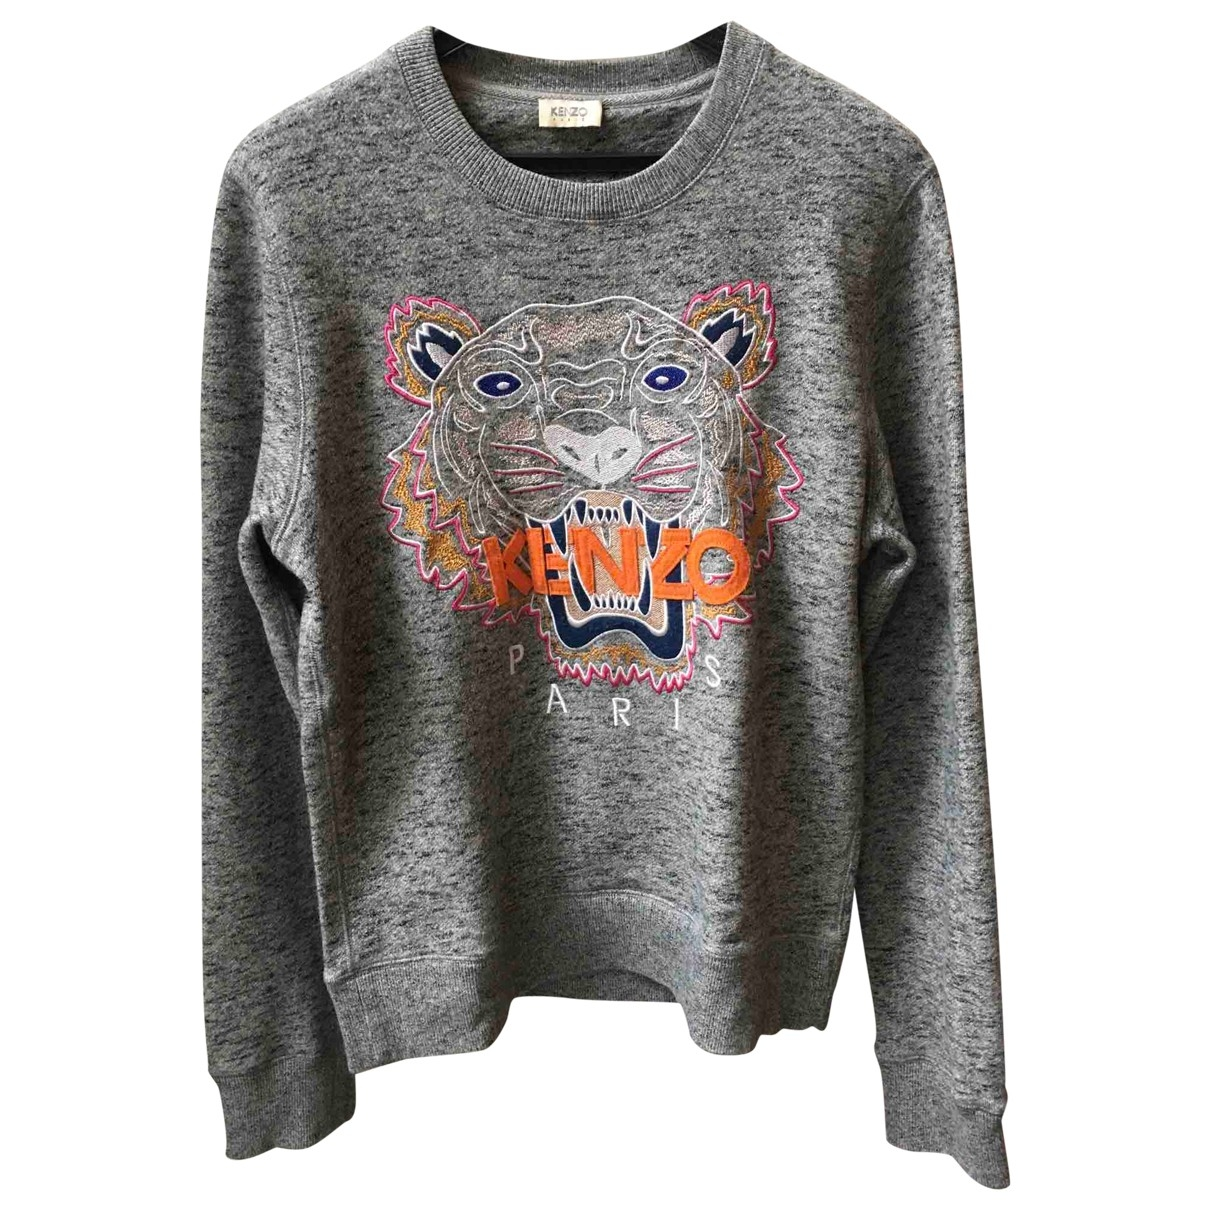 Kenzo \N Grey Cotton Knitwear & Sweatshirts for Men S International